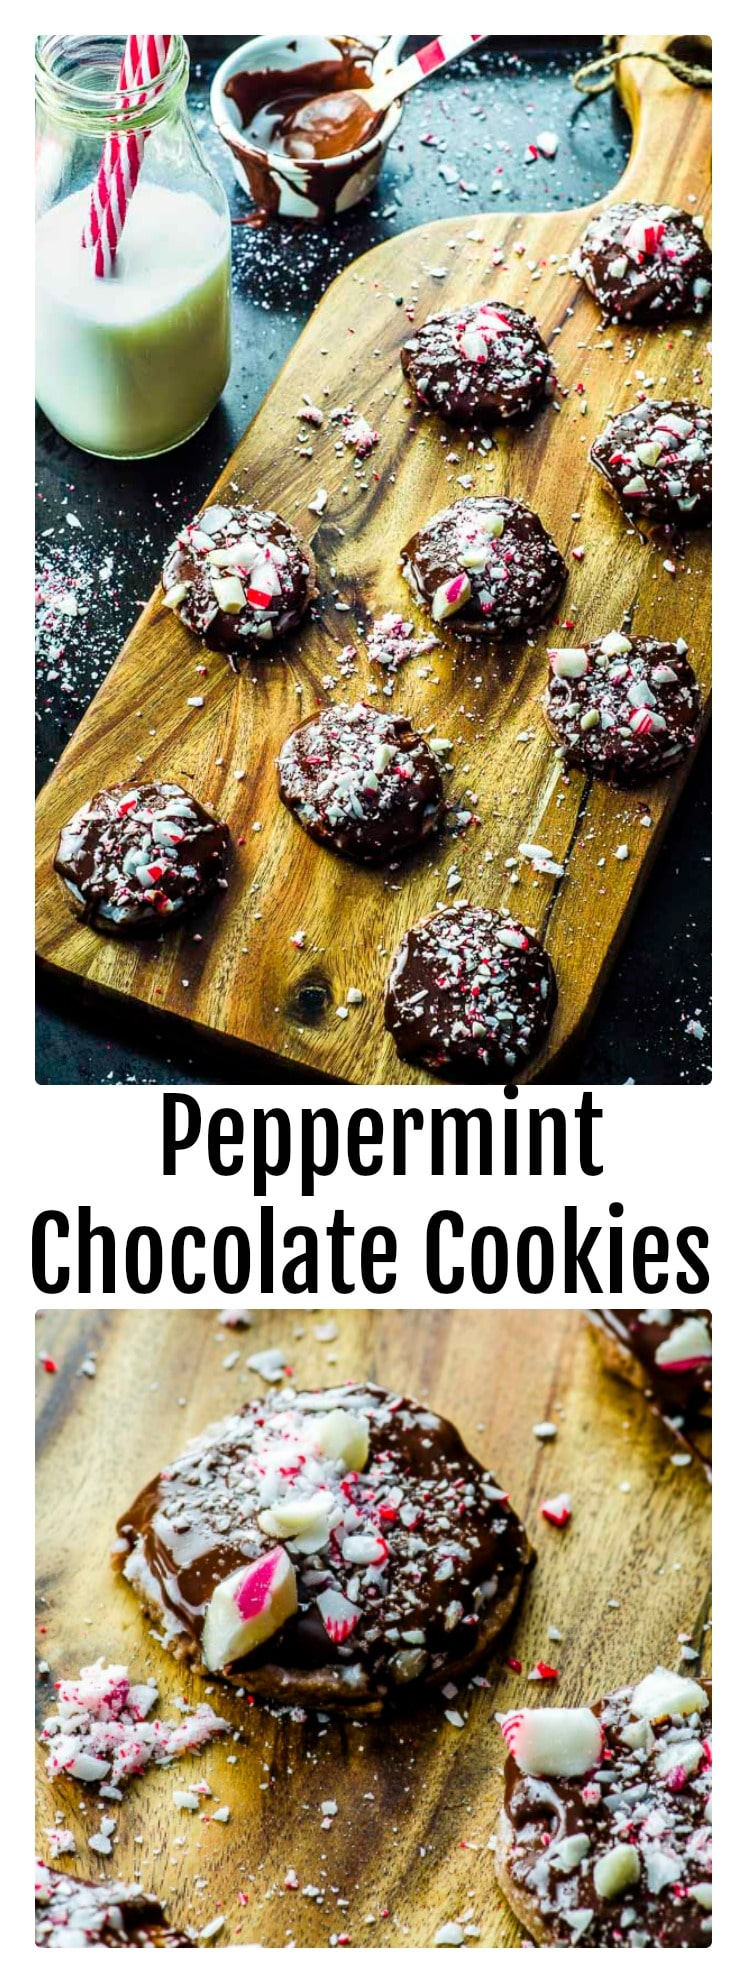 Vegan peppermint chocolate cookies: Chocolate and peppermint is the winning flavor combination, that transforms a regular cookie into a